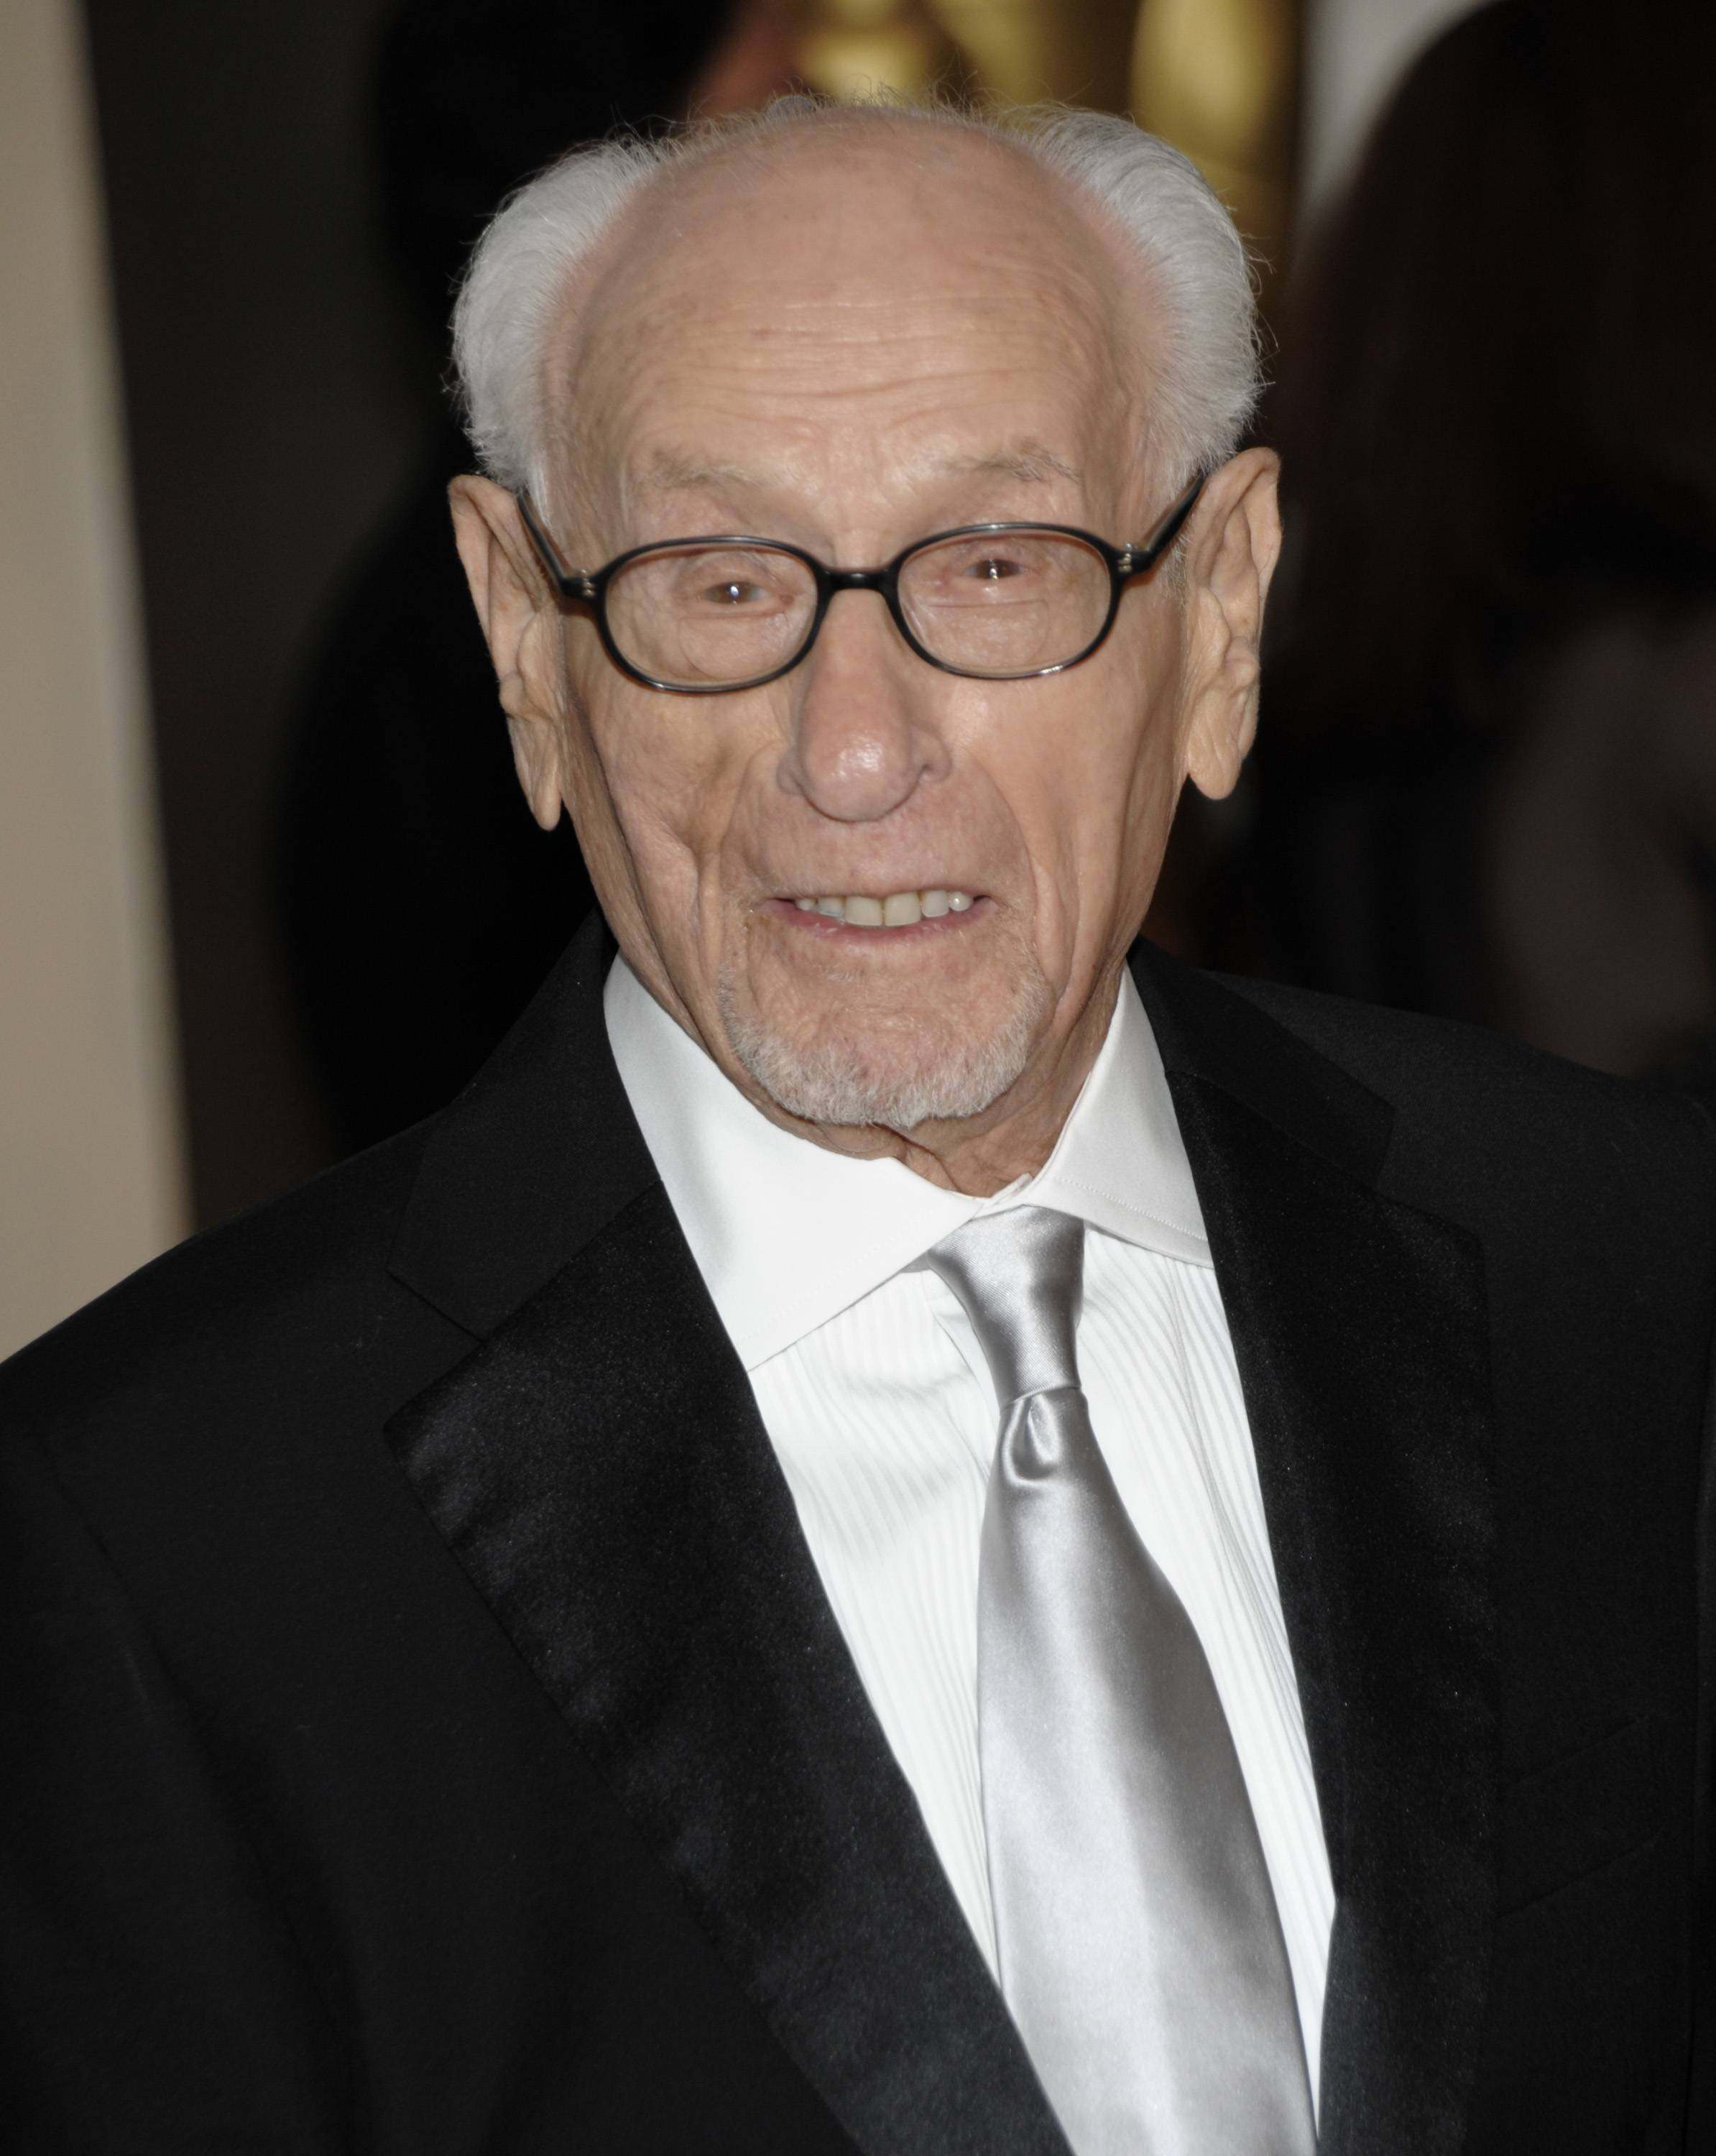 Actor Eli Wallach at the Academy of Motion Picture Arts and Sciences 2nd Annual Governors Awards in Los Angeles.